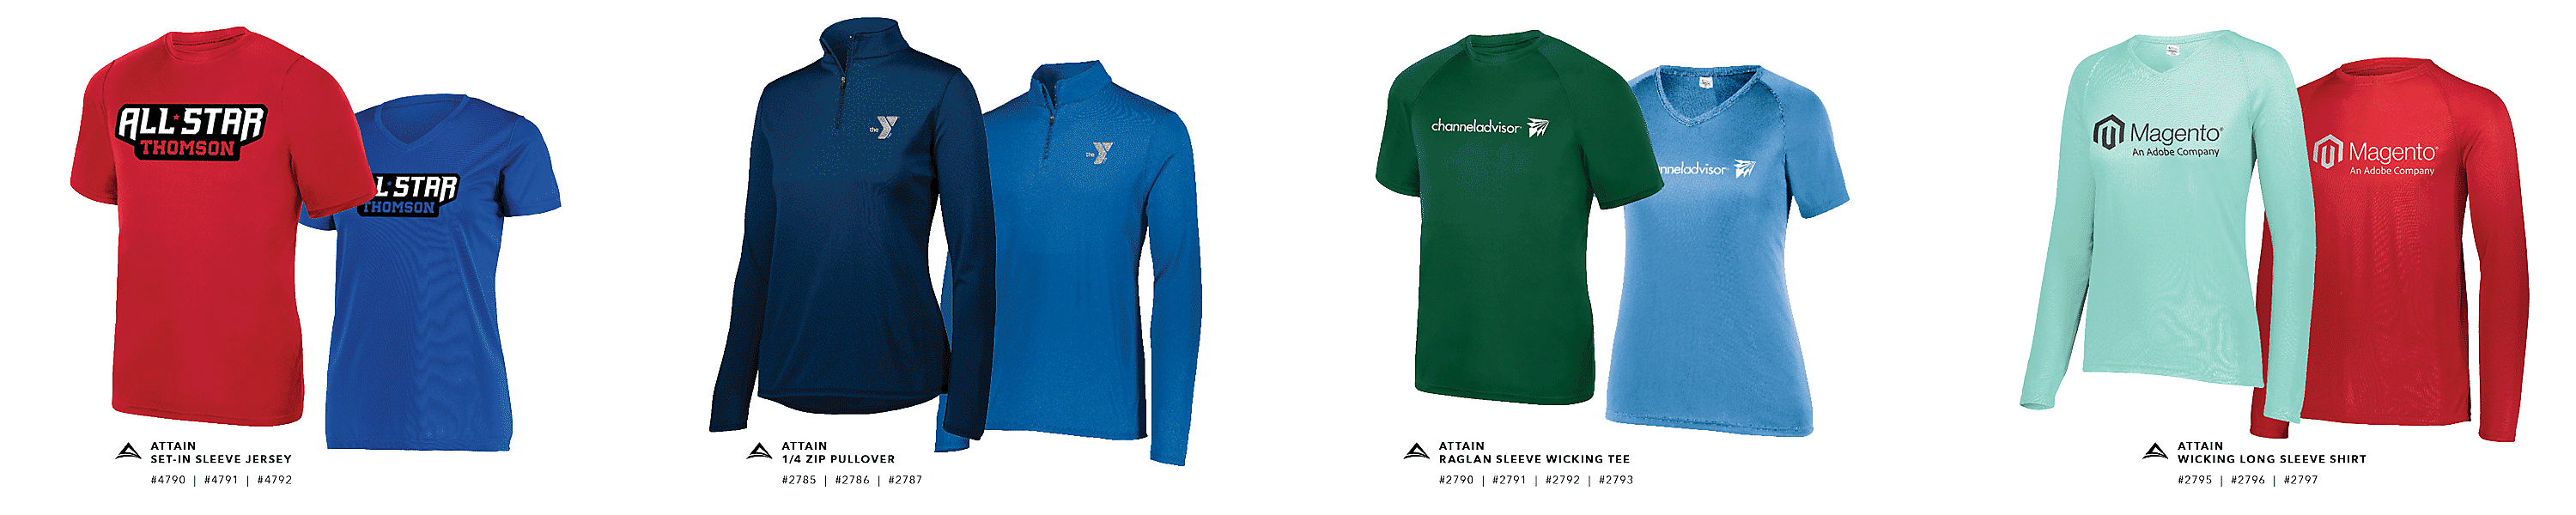 b95dd674a Wholesale Sports Apparel & Bulk Team Clothing | Augusta Sportswear ...